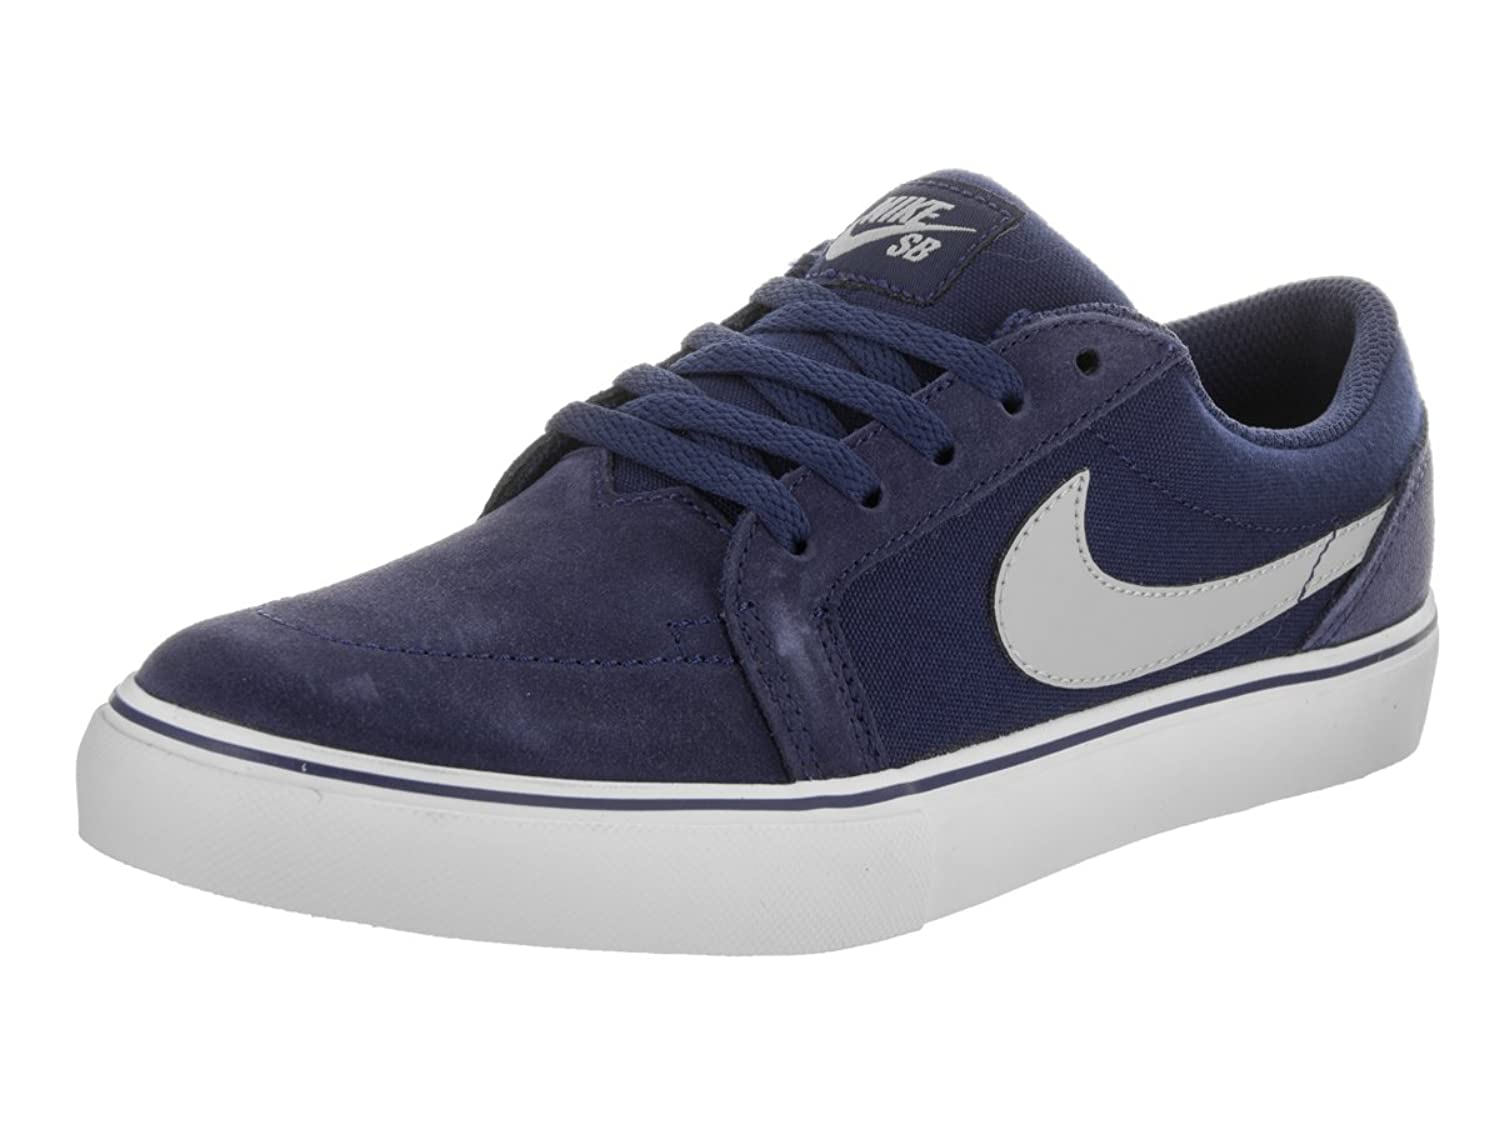 premium selection 2ffc8 0b5b0 Nike Satire II (GS), Zapatillas de Skateboarding para Niños